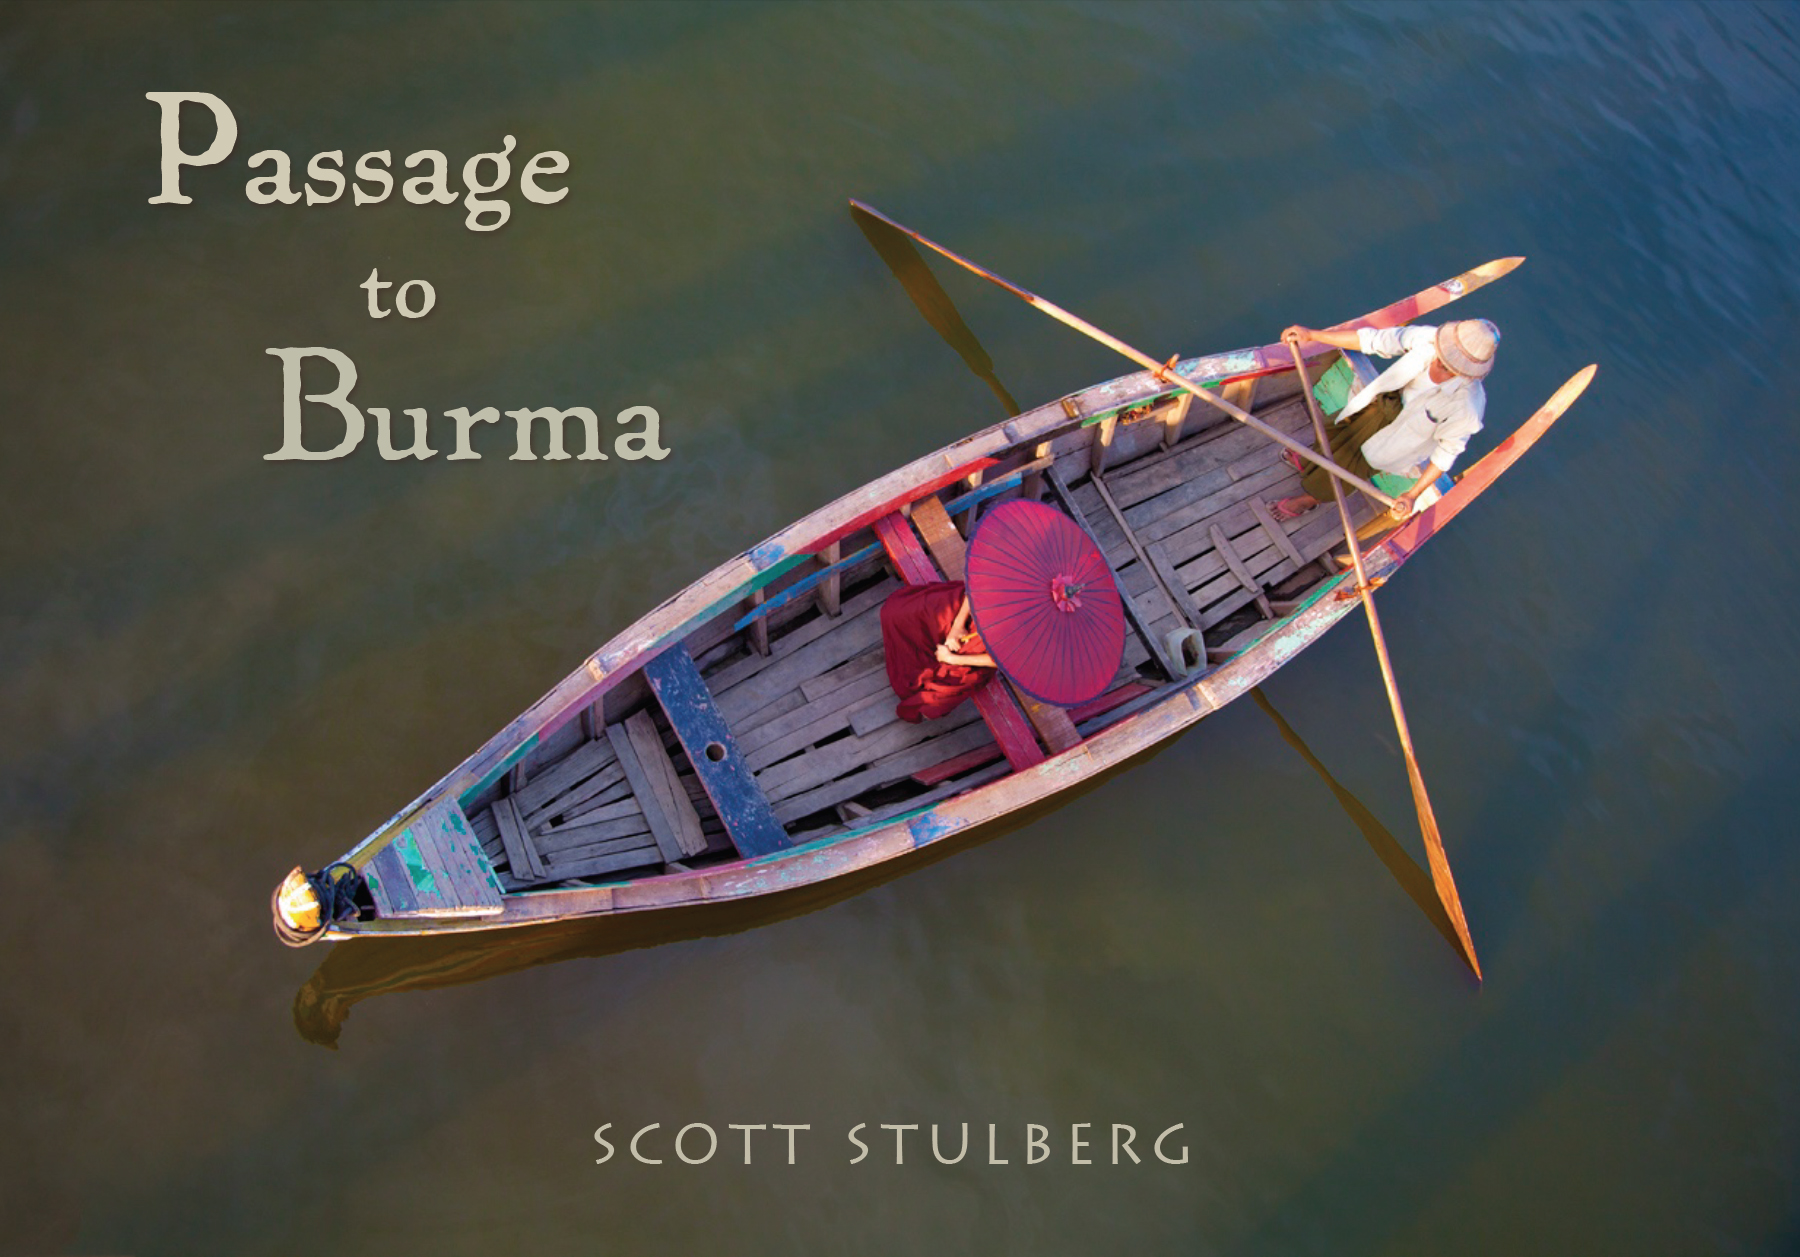 Passage to Burma, my new book is out!!!